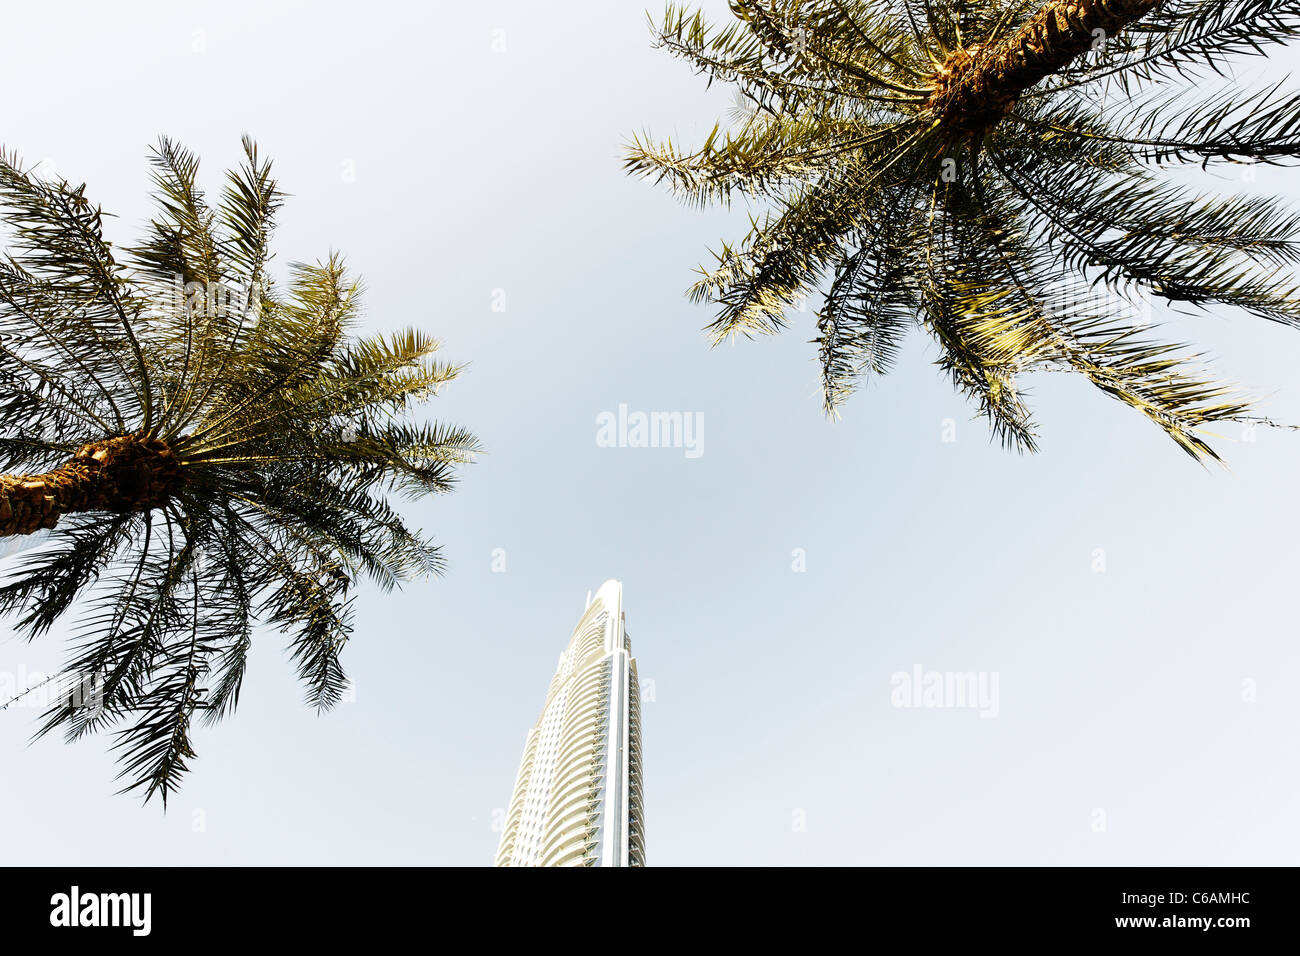 Burj Khalifa, the tallest building in the world, 828m high, Downtown Dubai, Dubai, United Arab Emirates, Middle - Stock Image